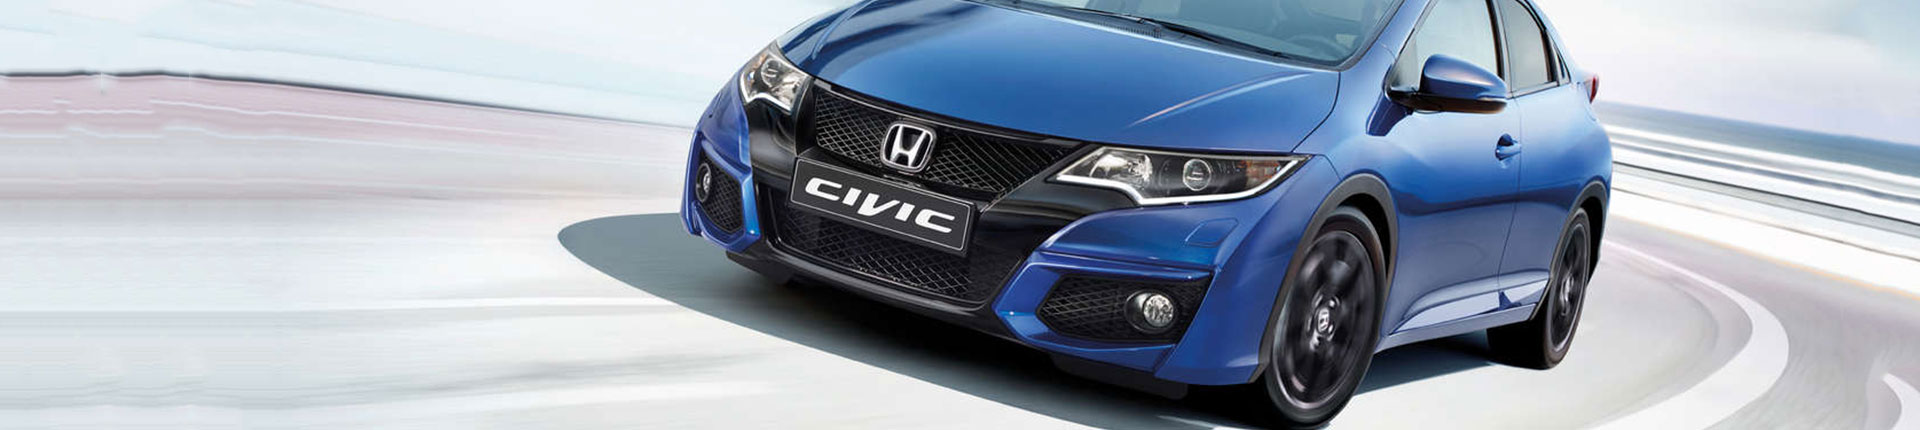 civic-slider9